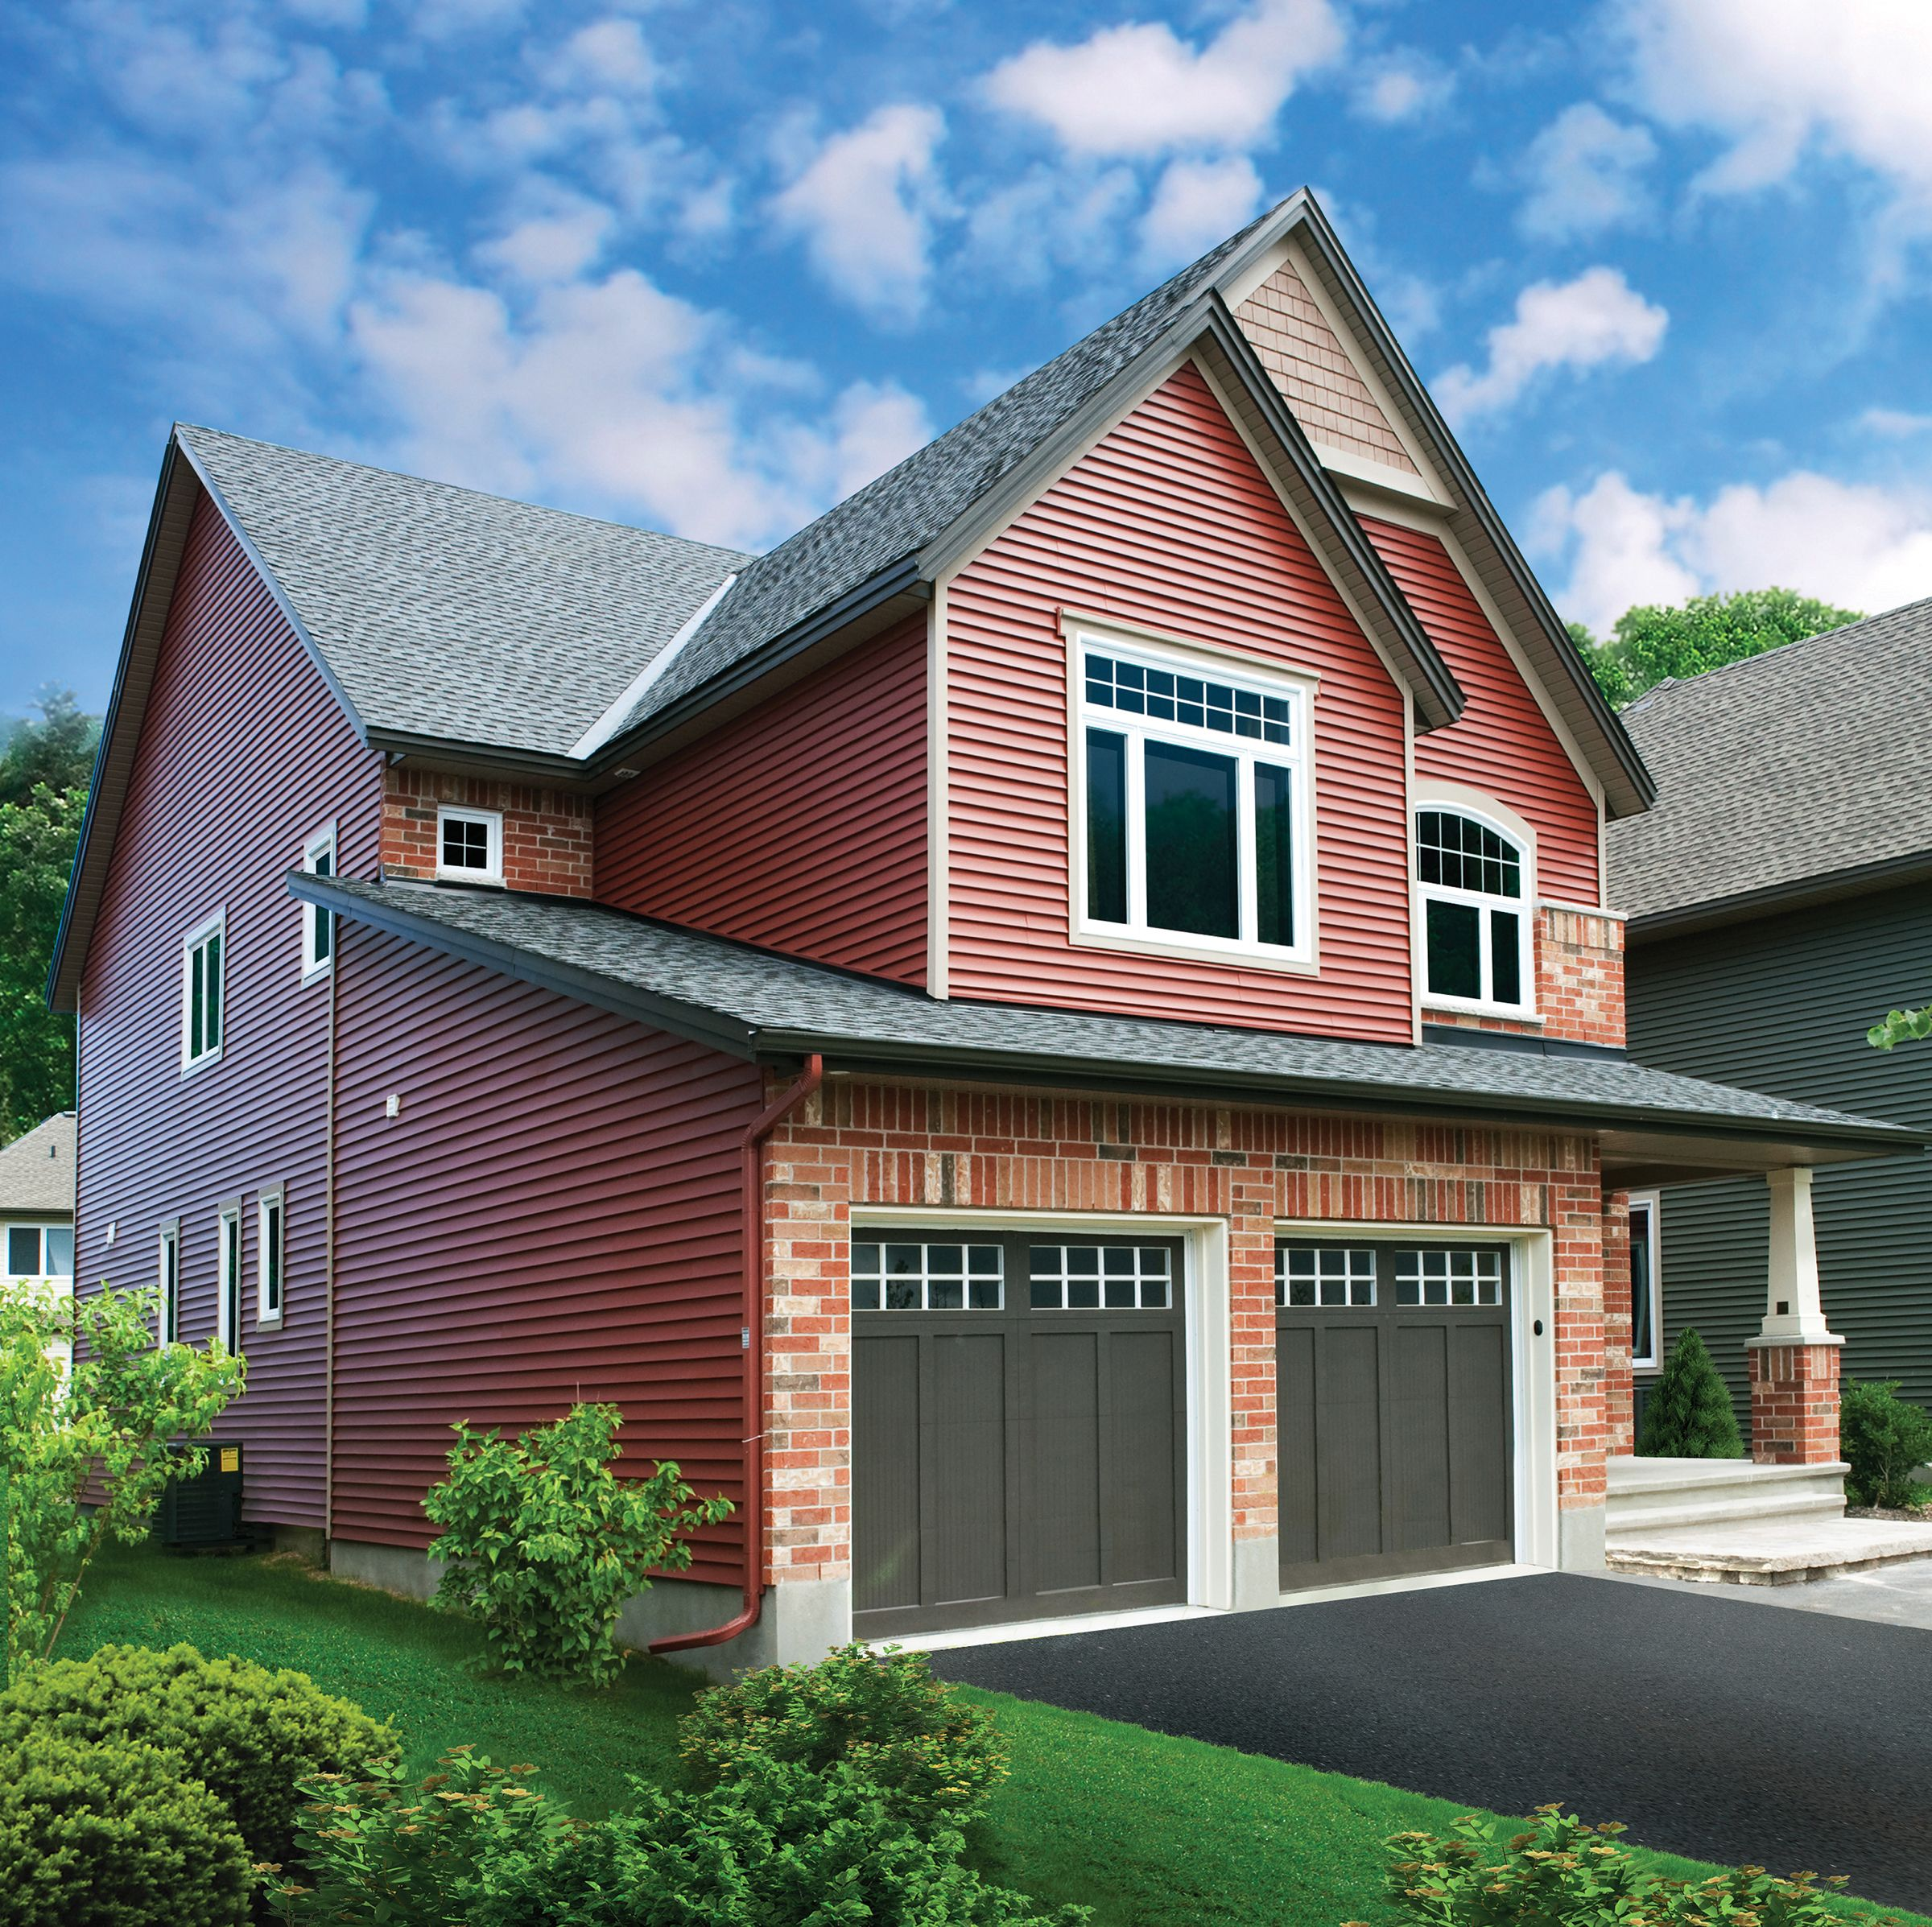 Venetian Red Vinyl Siding With Snow White Trim And Brown Door